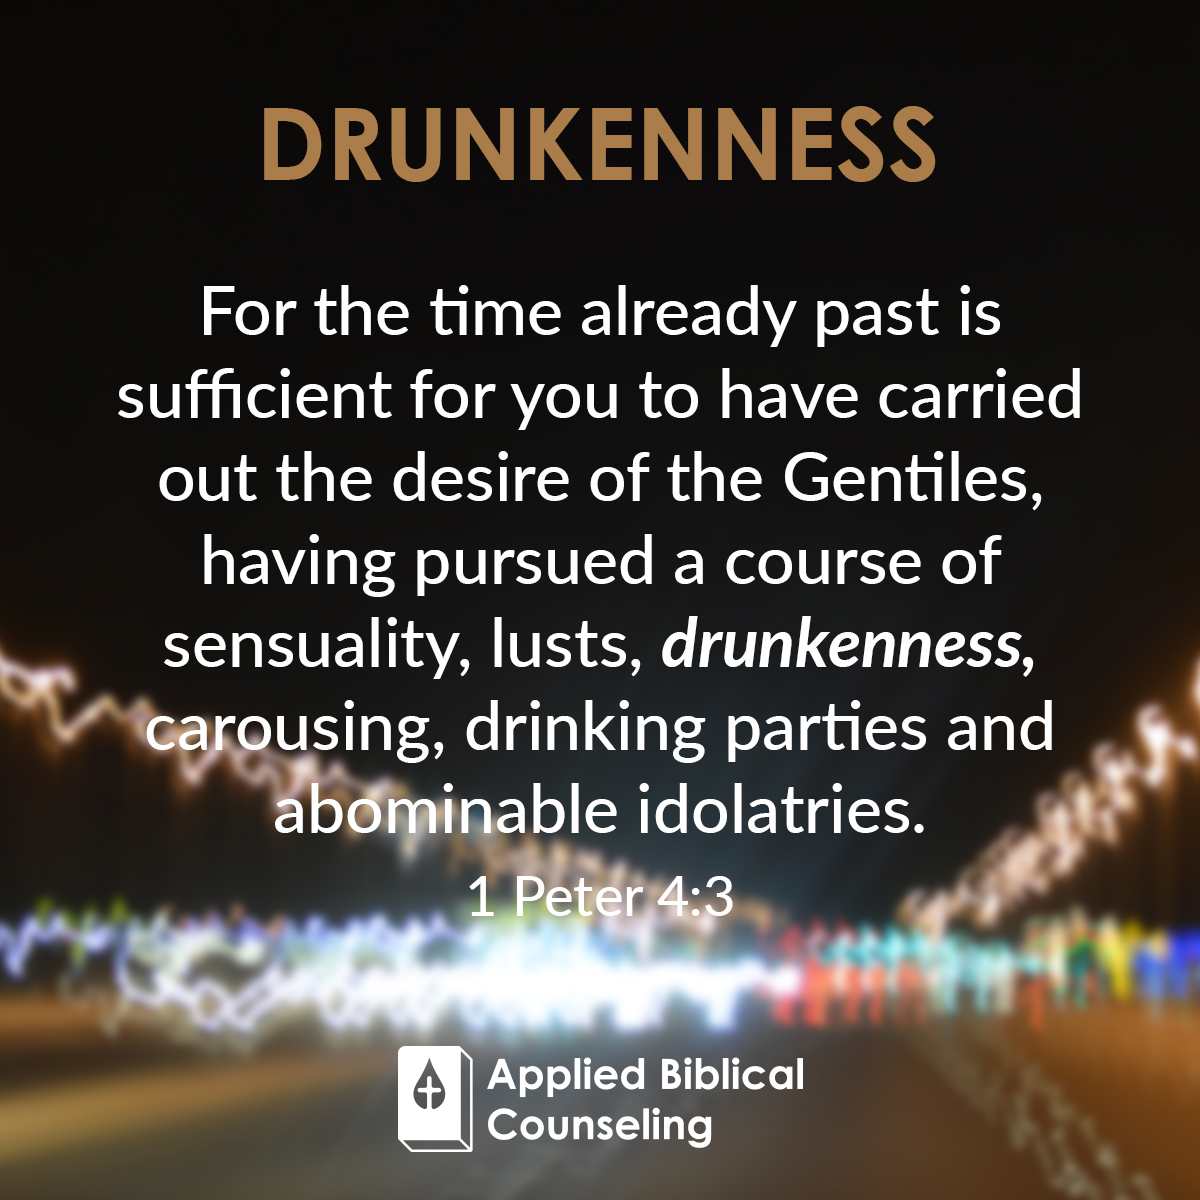 Applied Biblical Counseling Facebook w18 Drunkenness 5